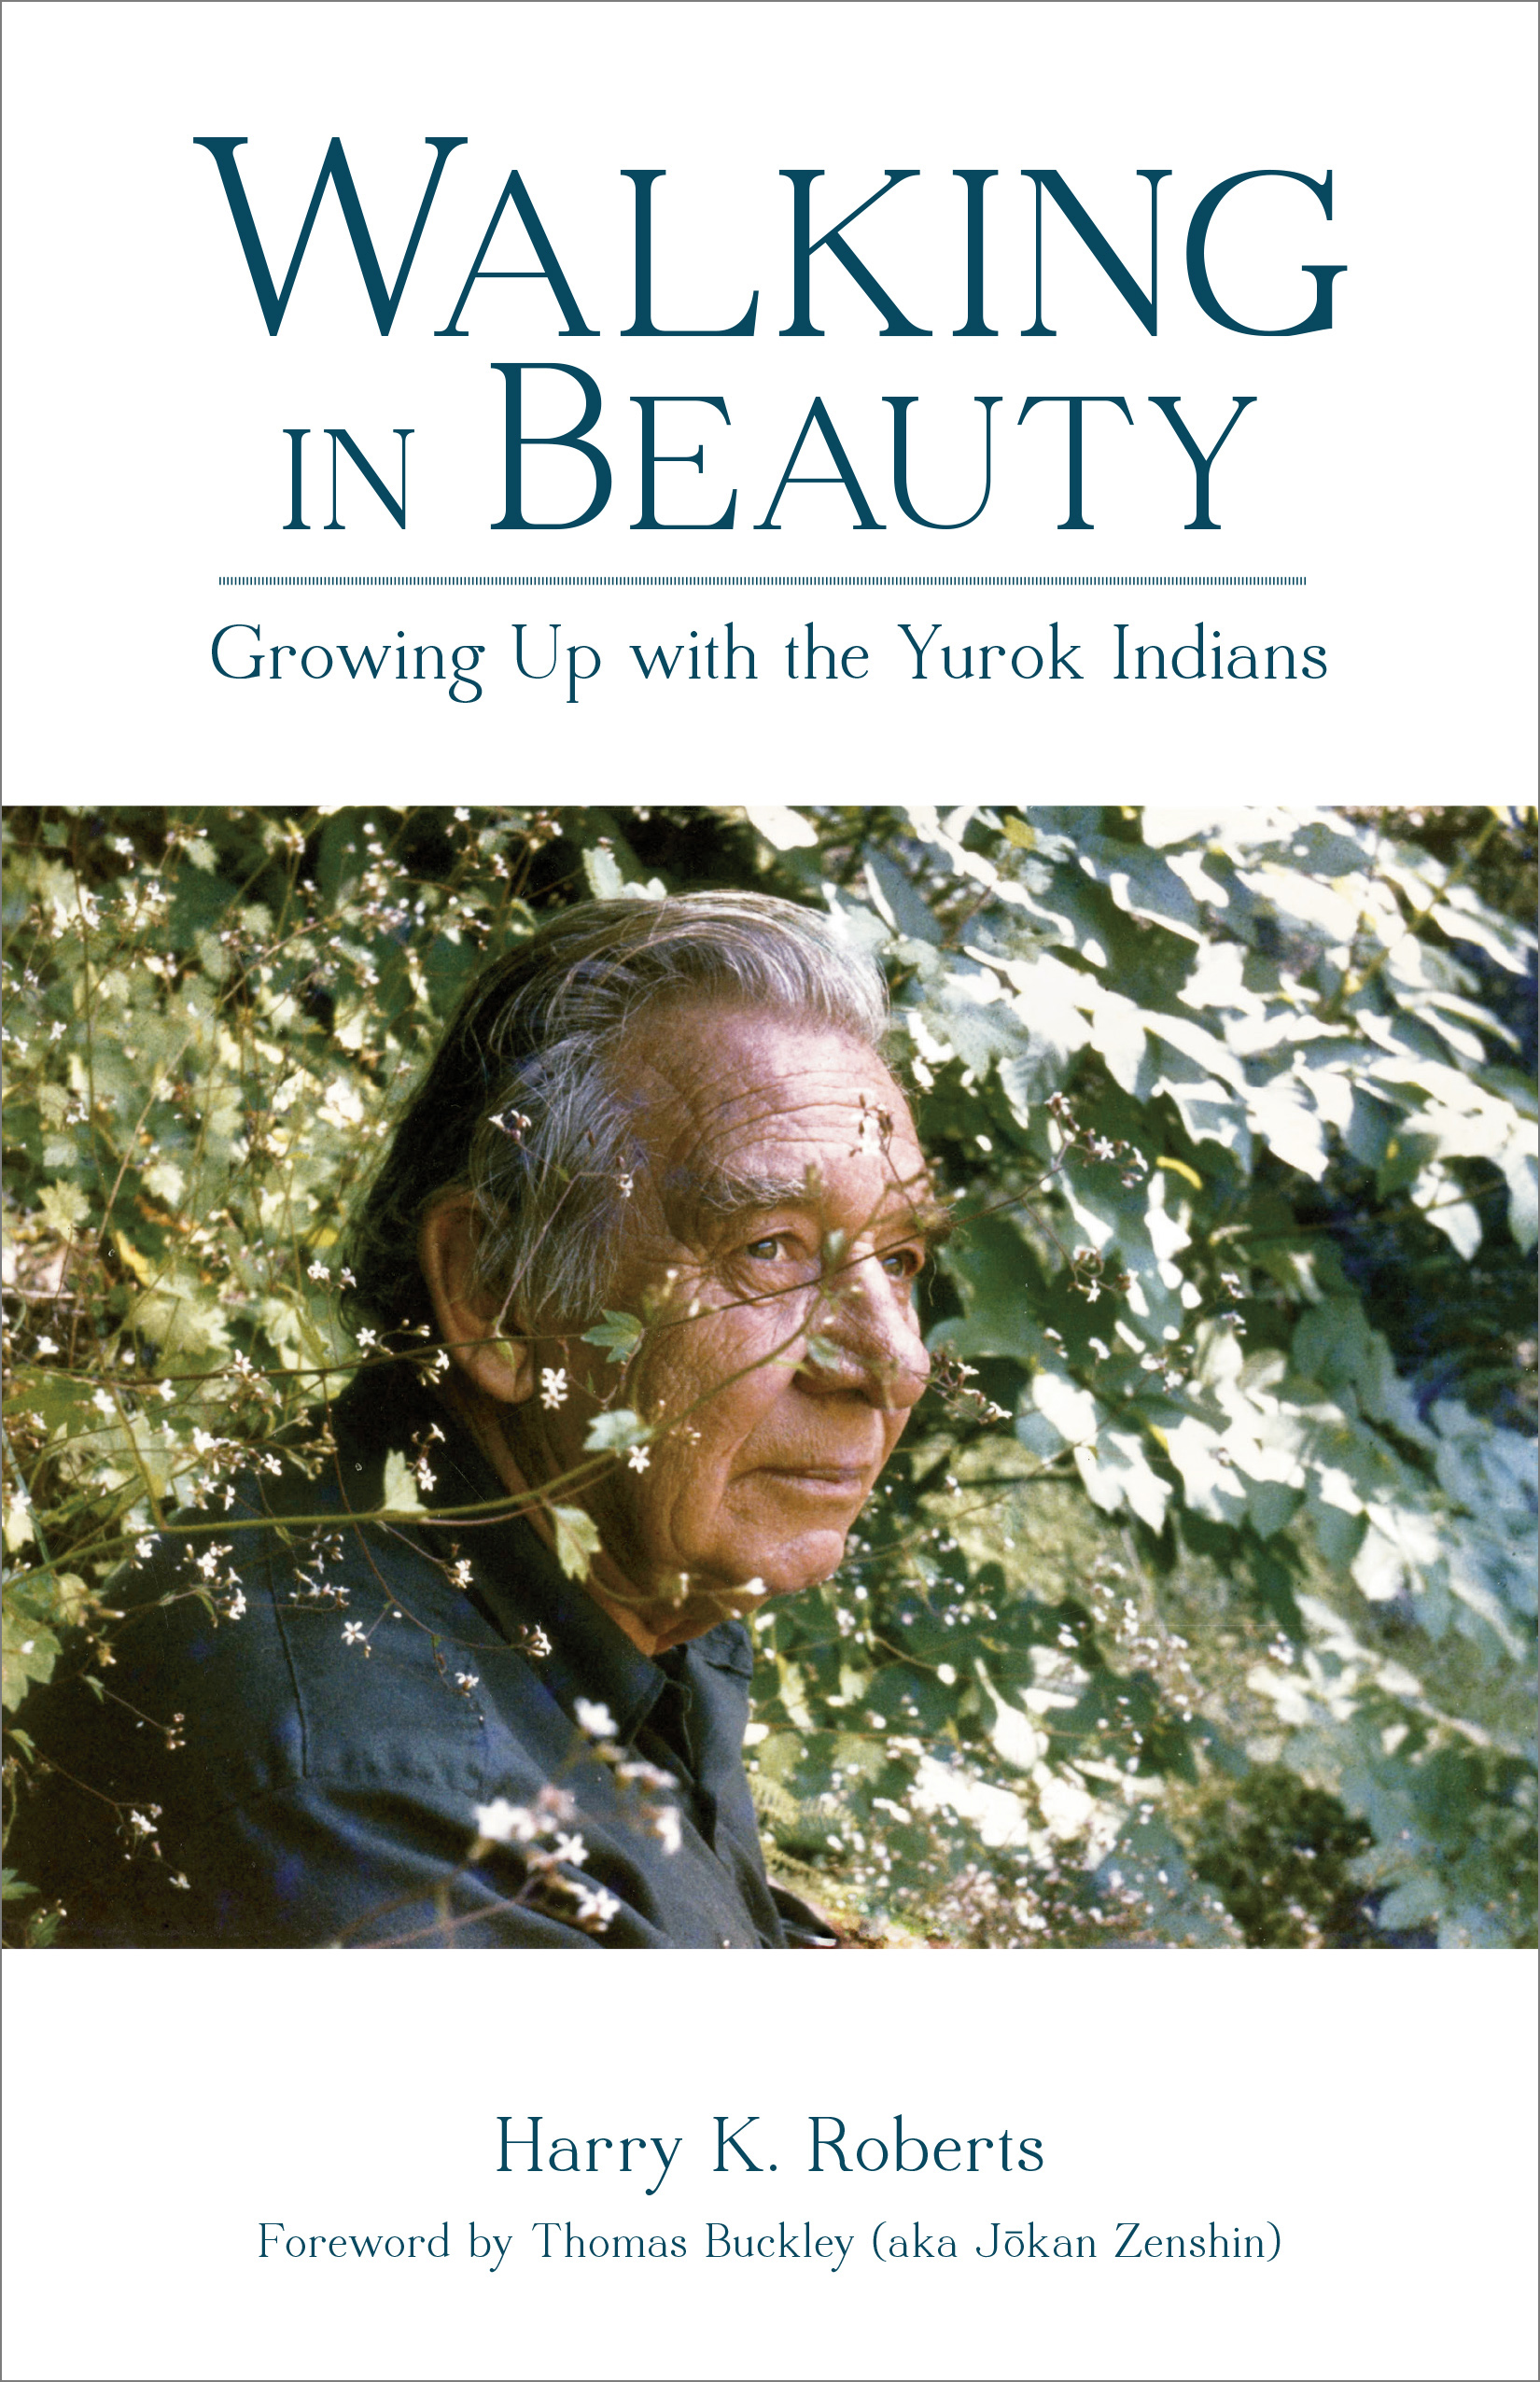 Walking in Beauty: Growing Up with the Yurok Indians